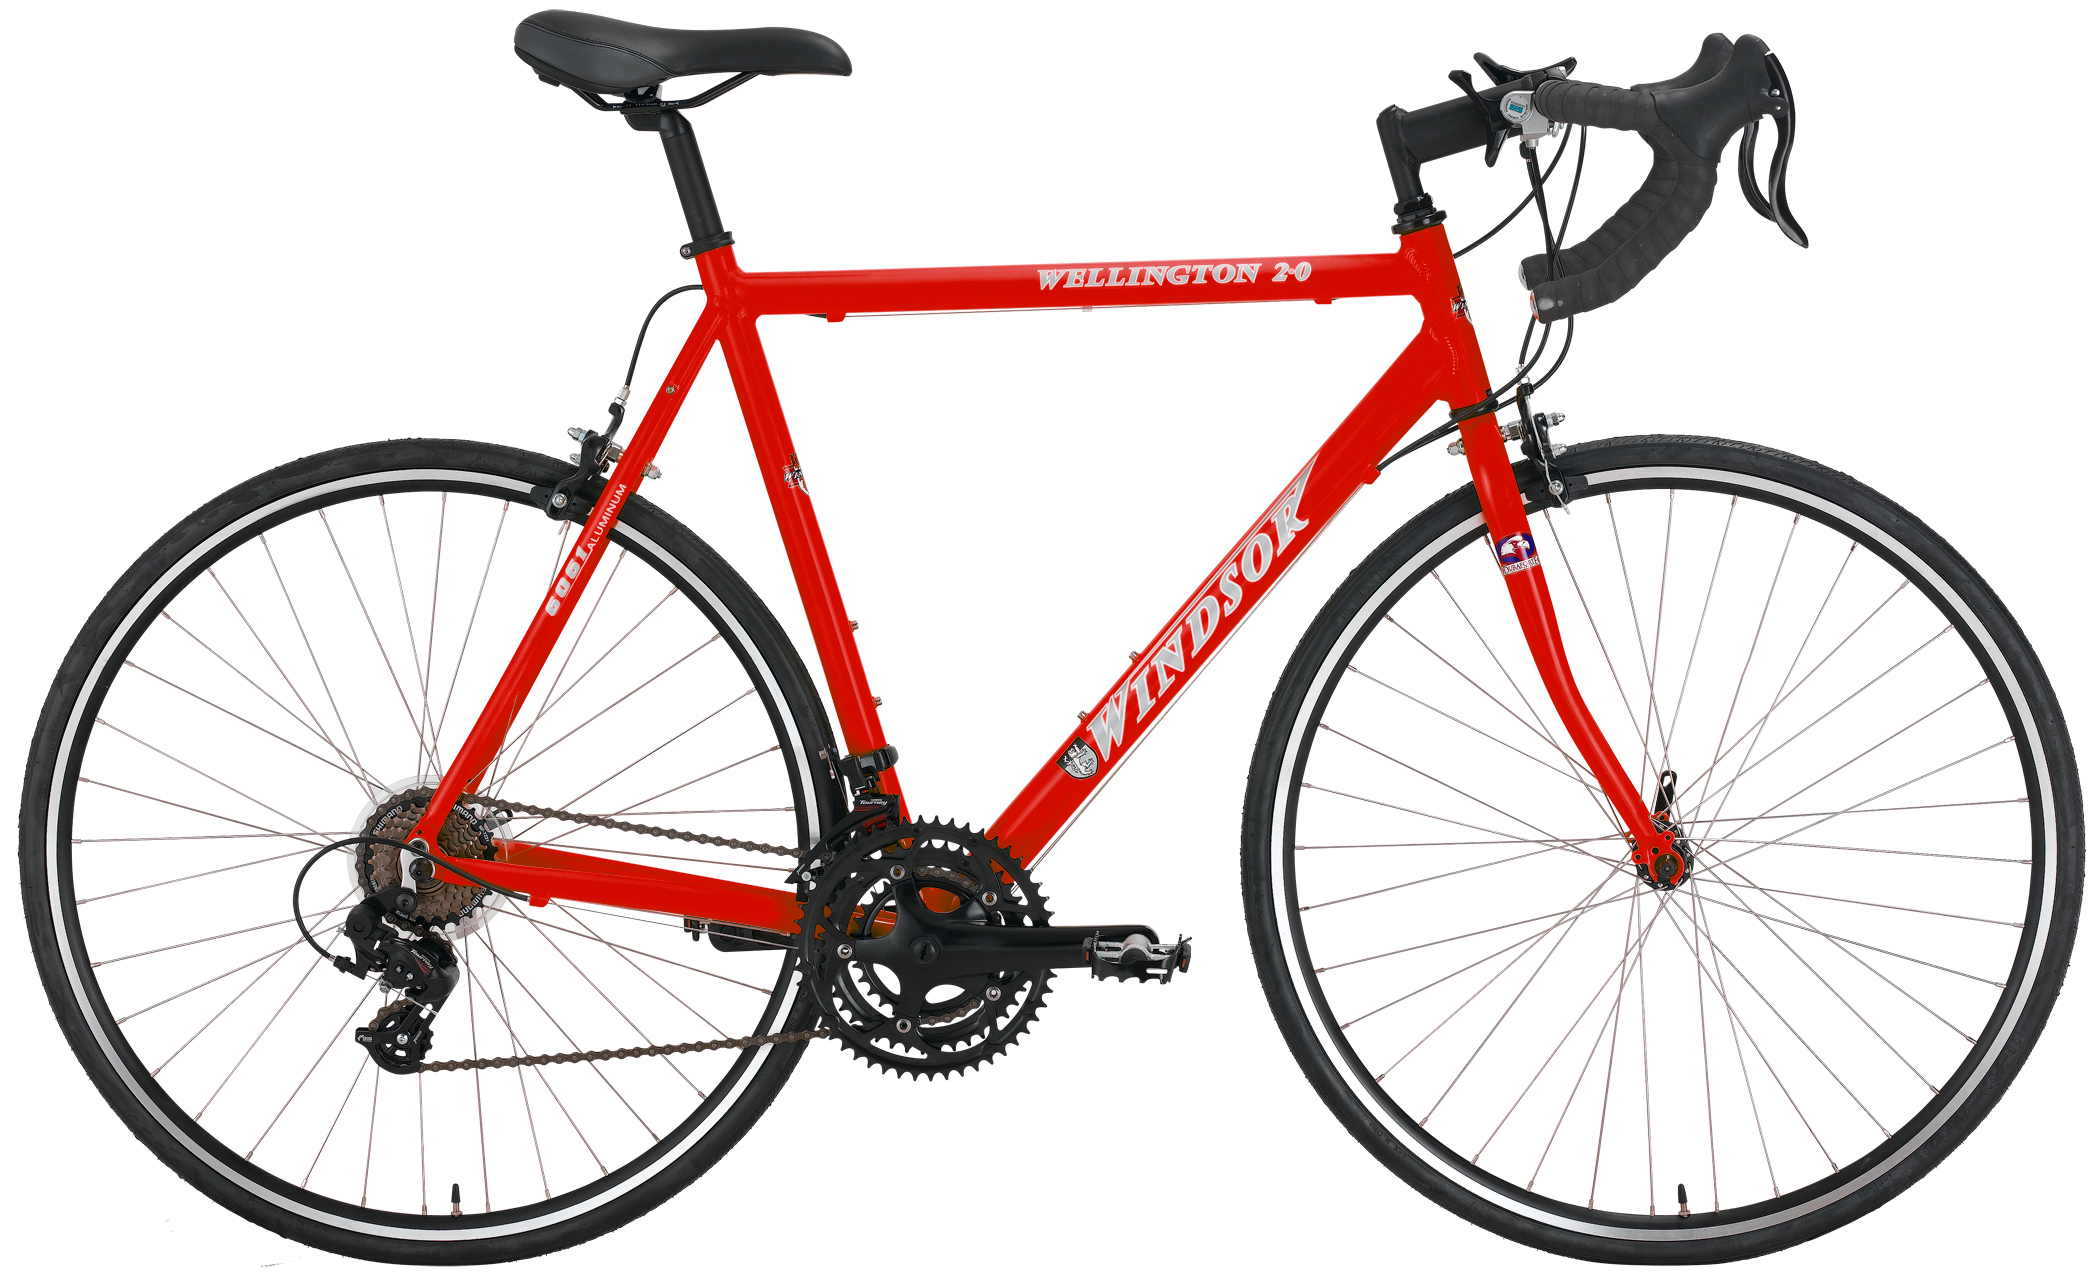 WELLINGTON 2.0     - SHIMANO 21sp ALUMINUM ROAD BIKE